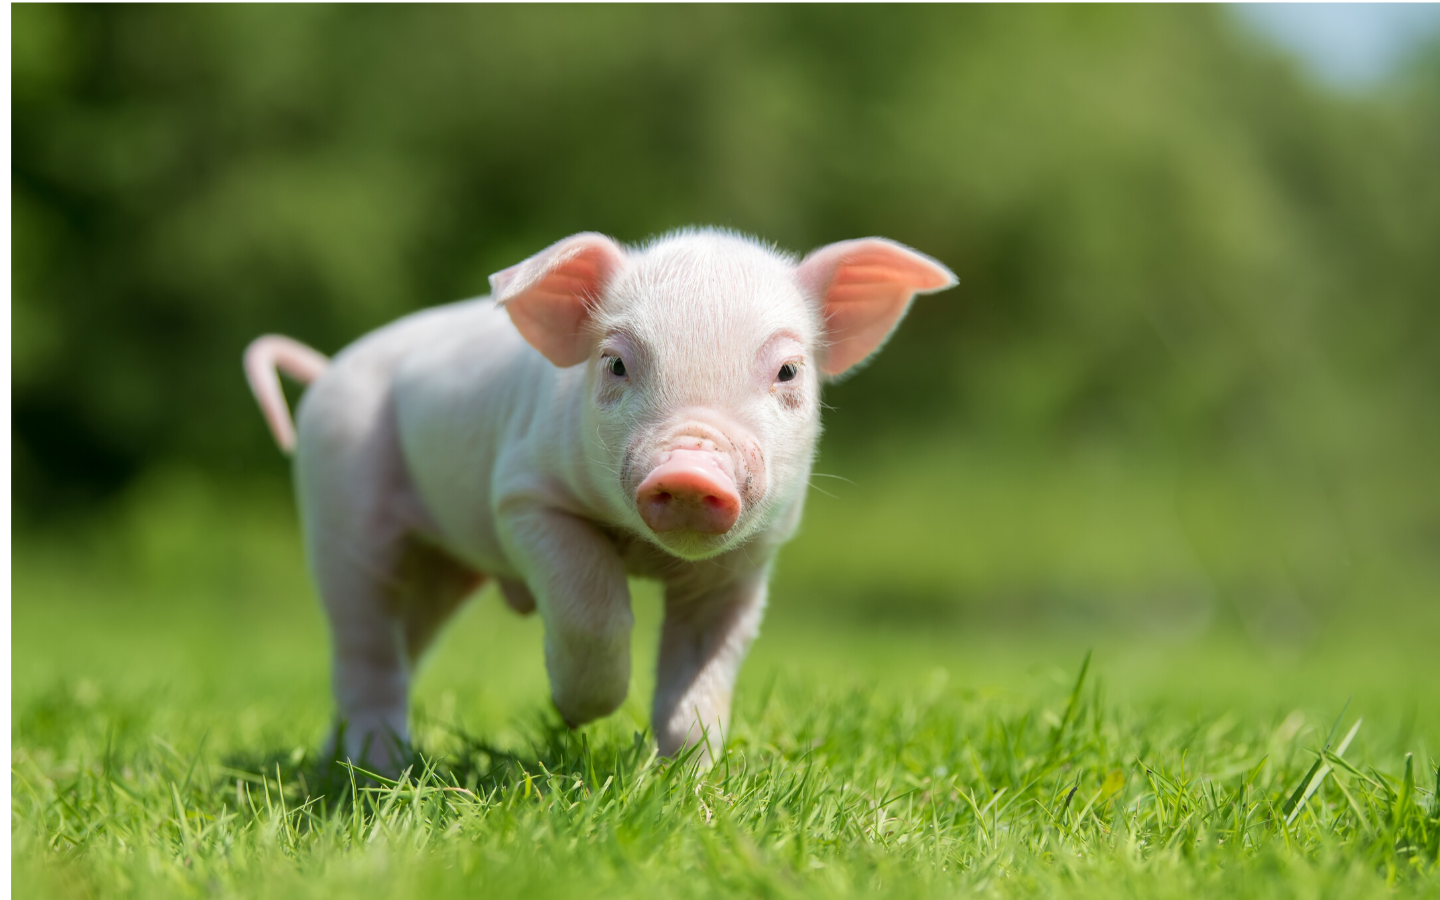 38 Studies in 38 Sentences | Take Home Messages from the 2019 Kansas Swine Day